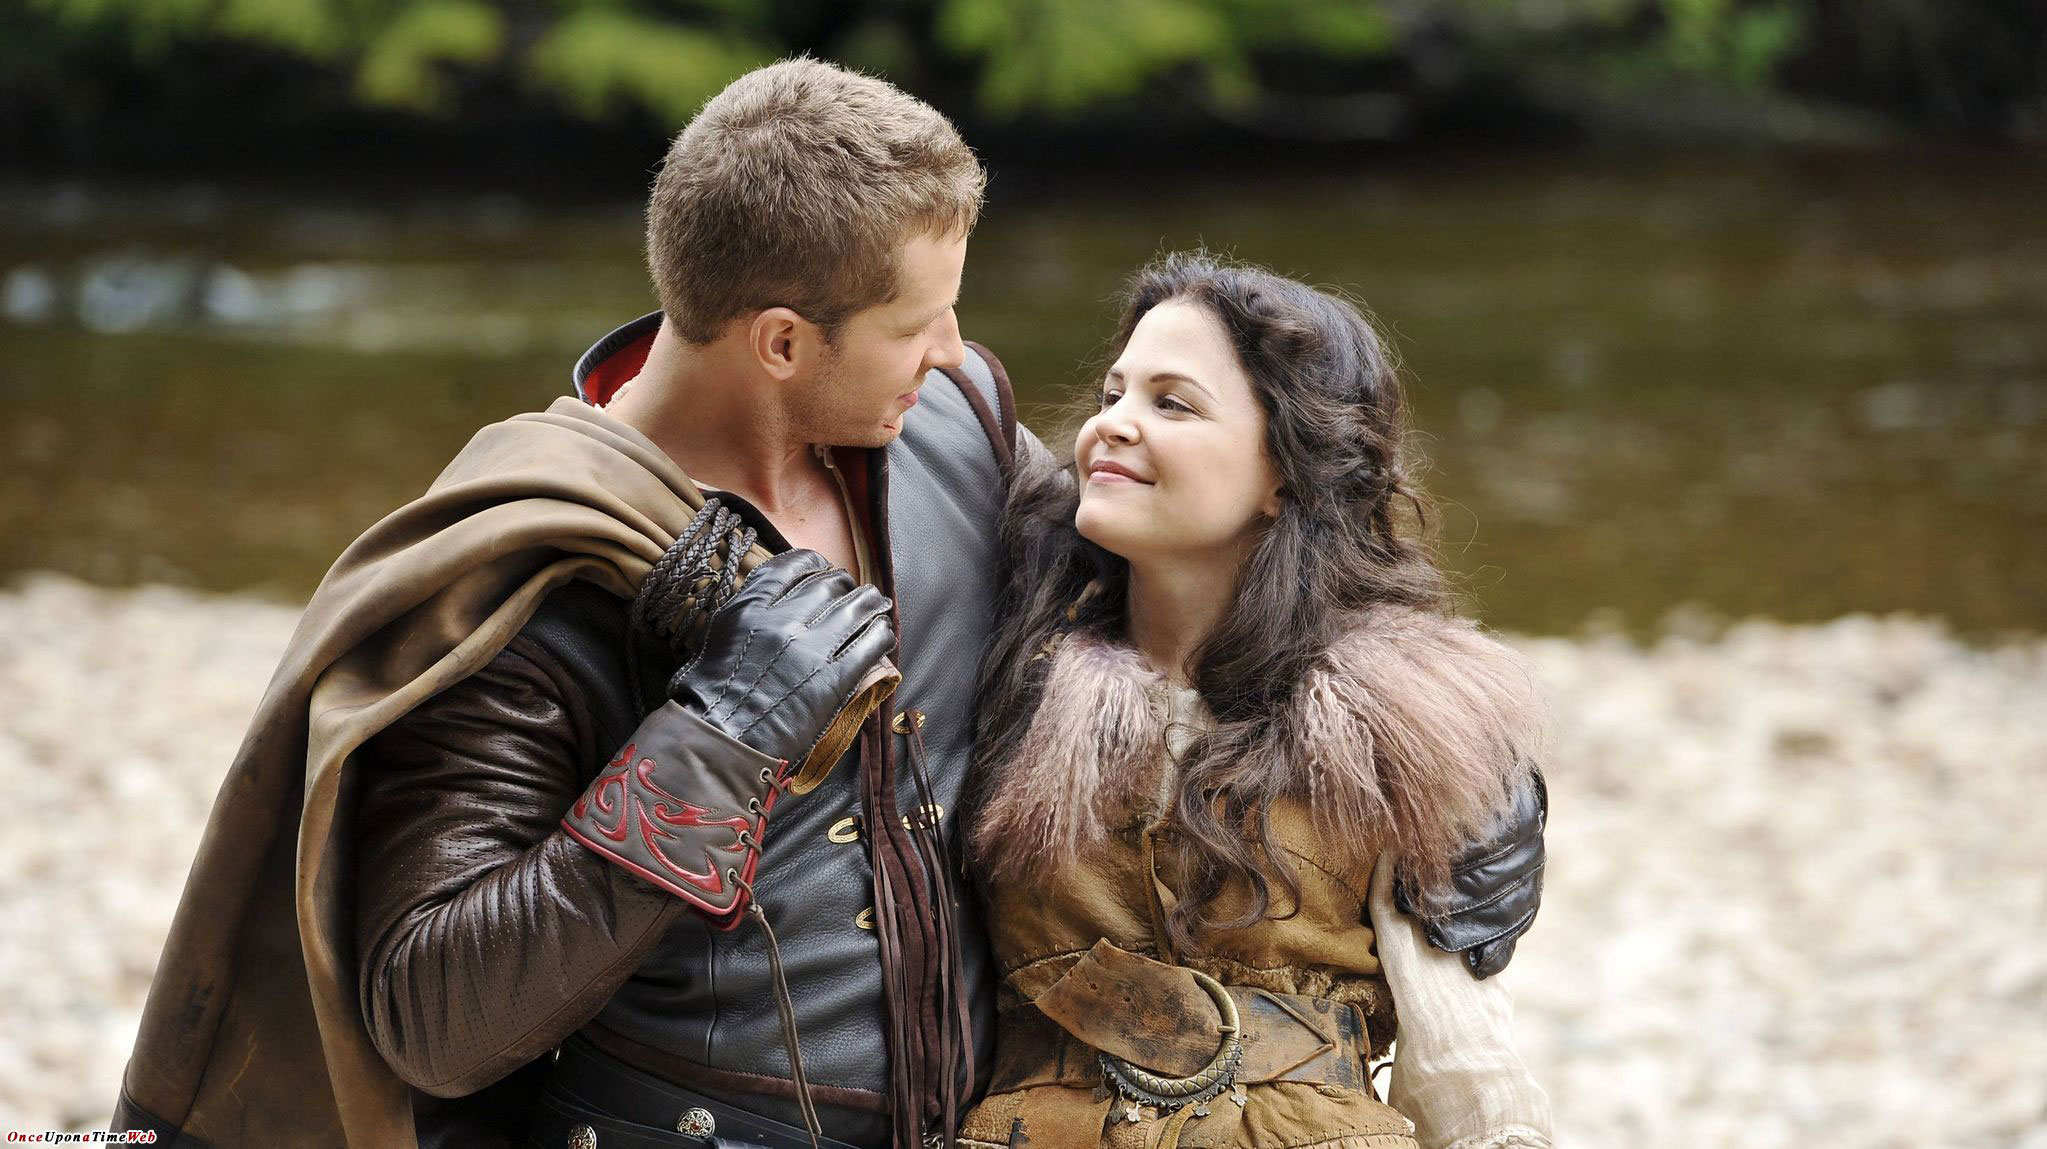 TV Couples Who Dated IRL Snow White and Prince Charming Once Upon a Time - In 2011, Ginnifer Goodwin and Josh Dallas met on ABC's Once Upon a Time , in which they played Snow White and Prince Charming. While they began as friends, their relationship blossomed.